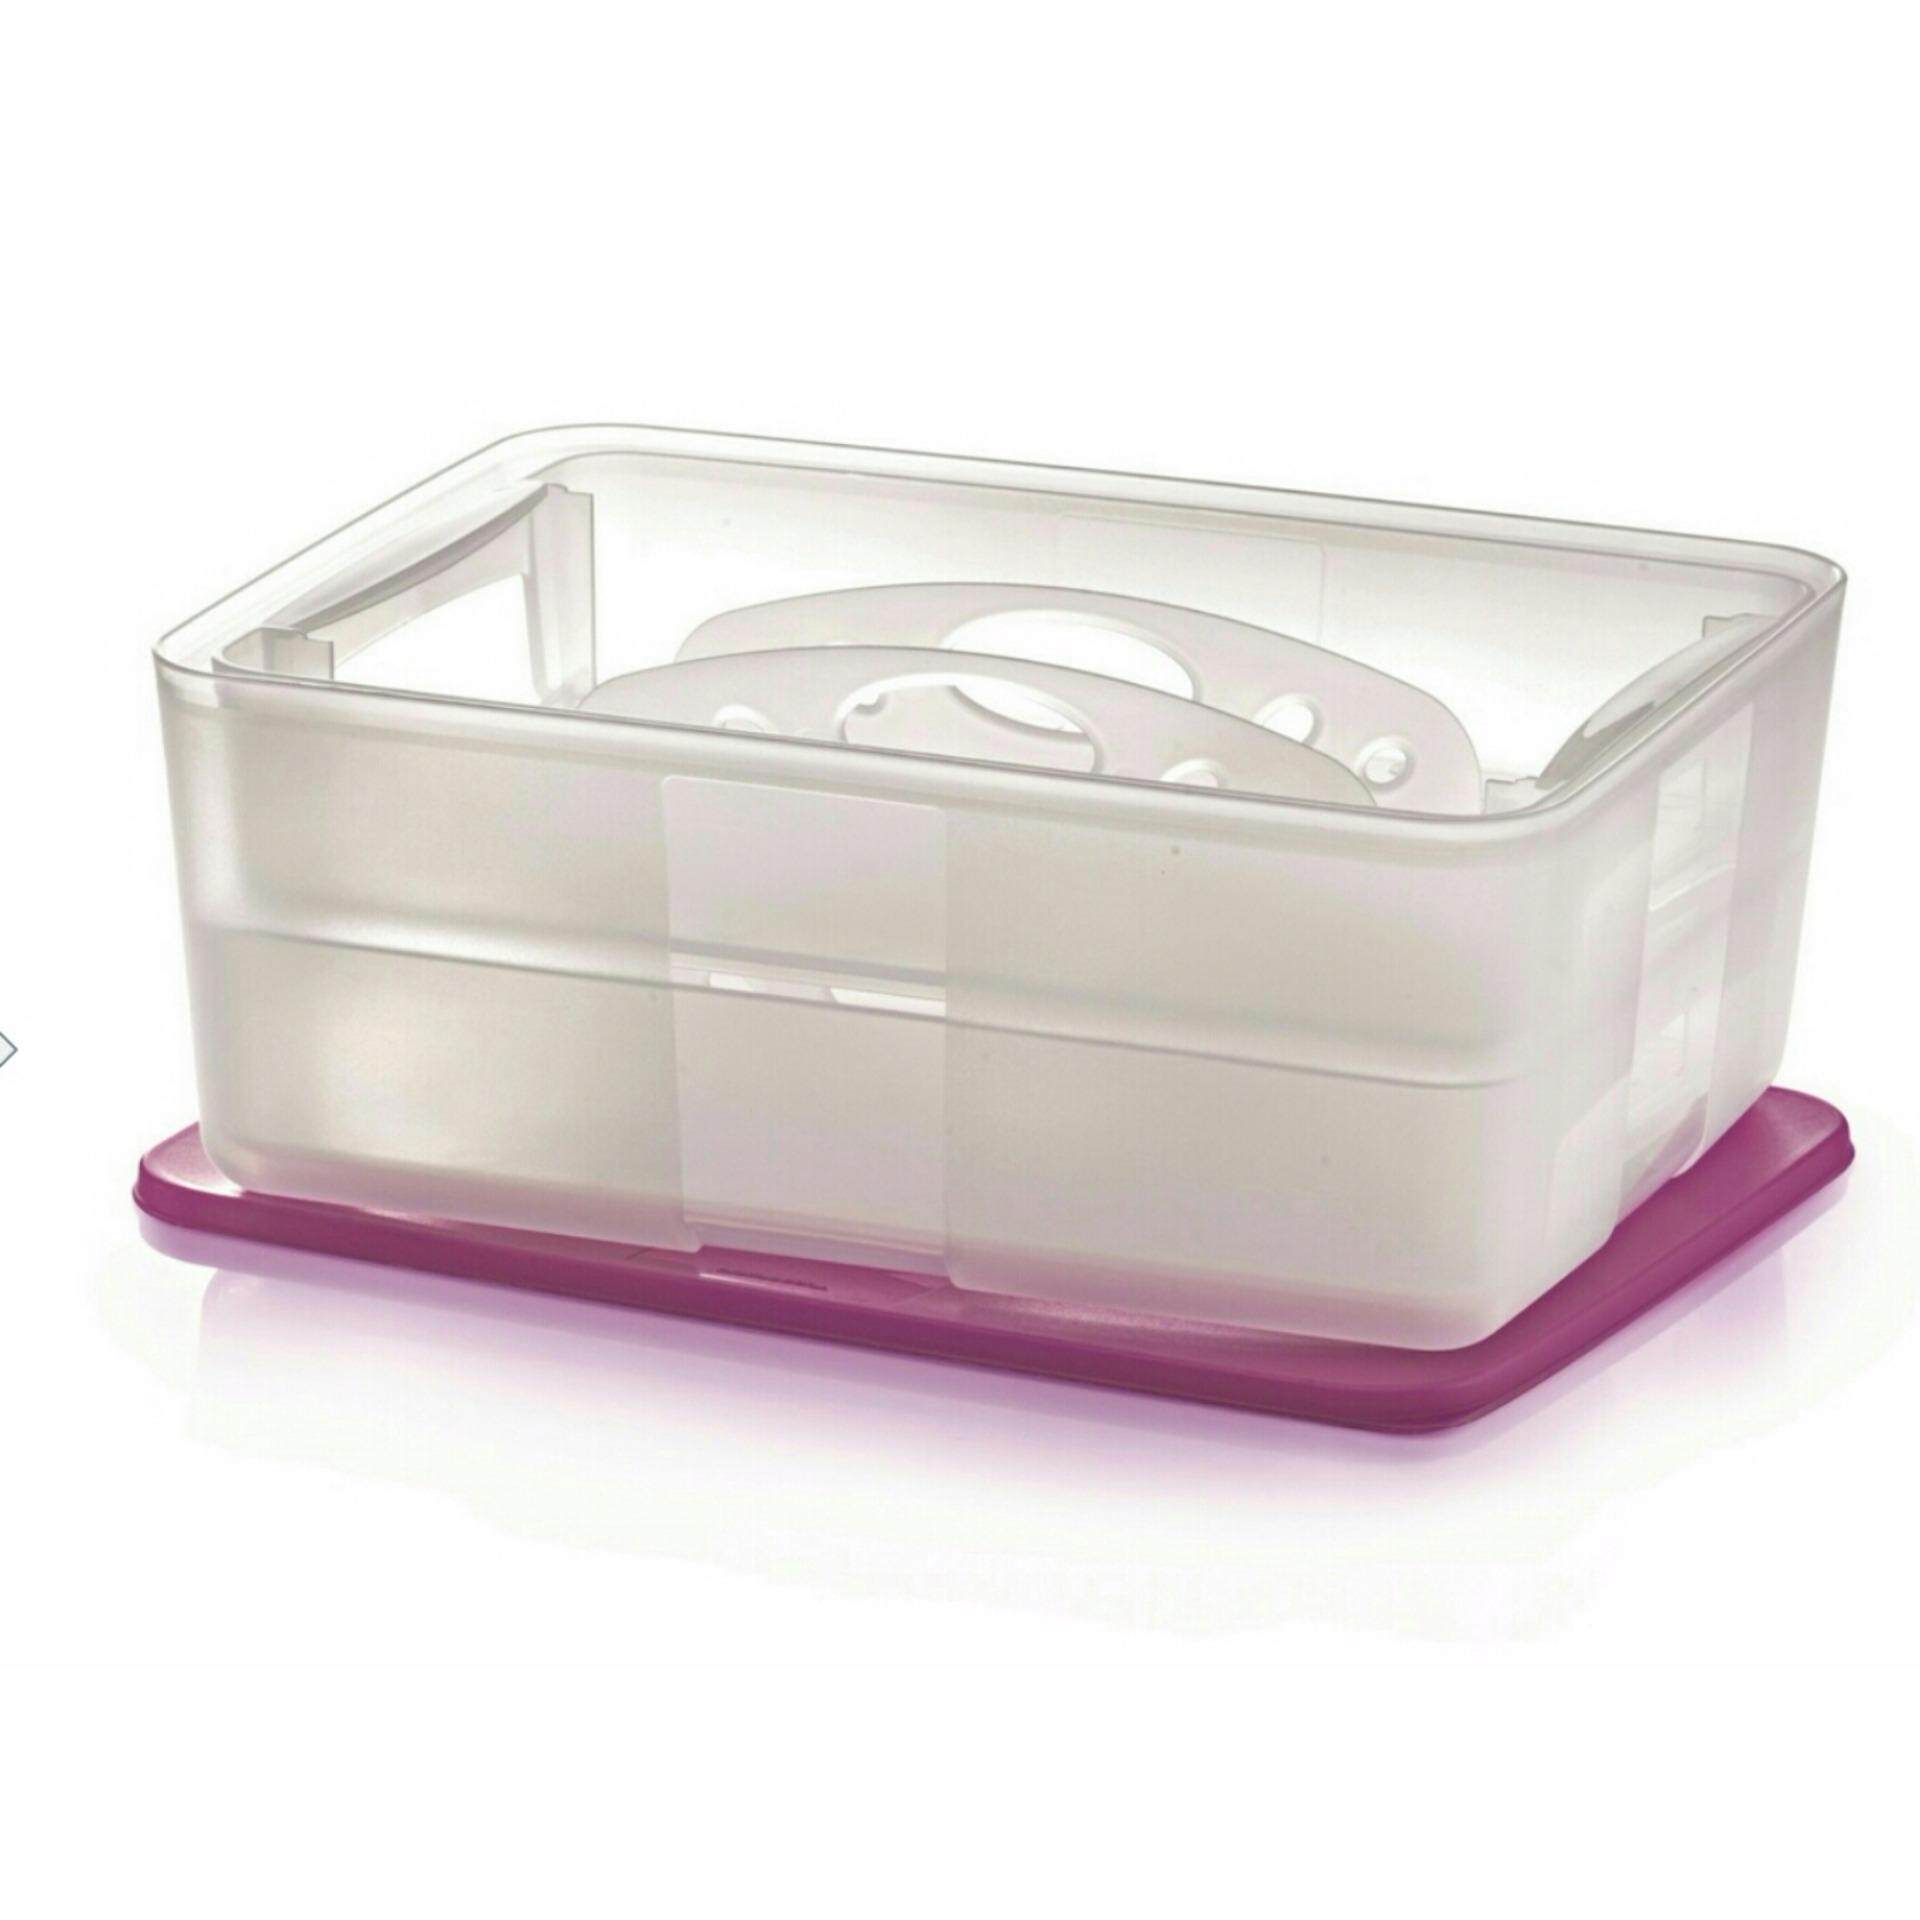 Tupperware FreezerMate Large III with Divider (1) 5.6L